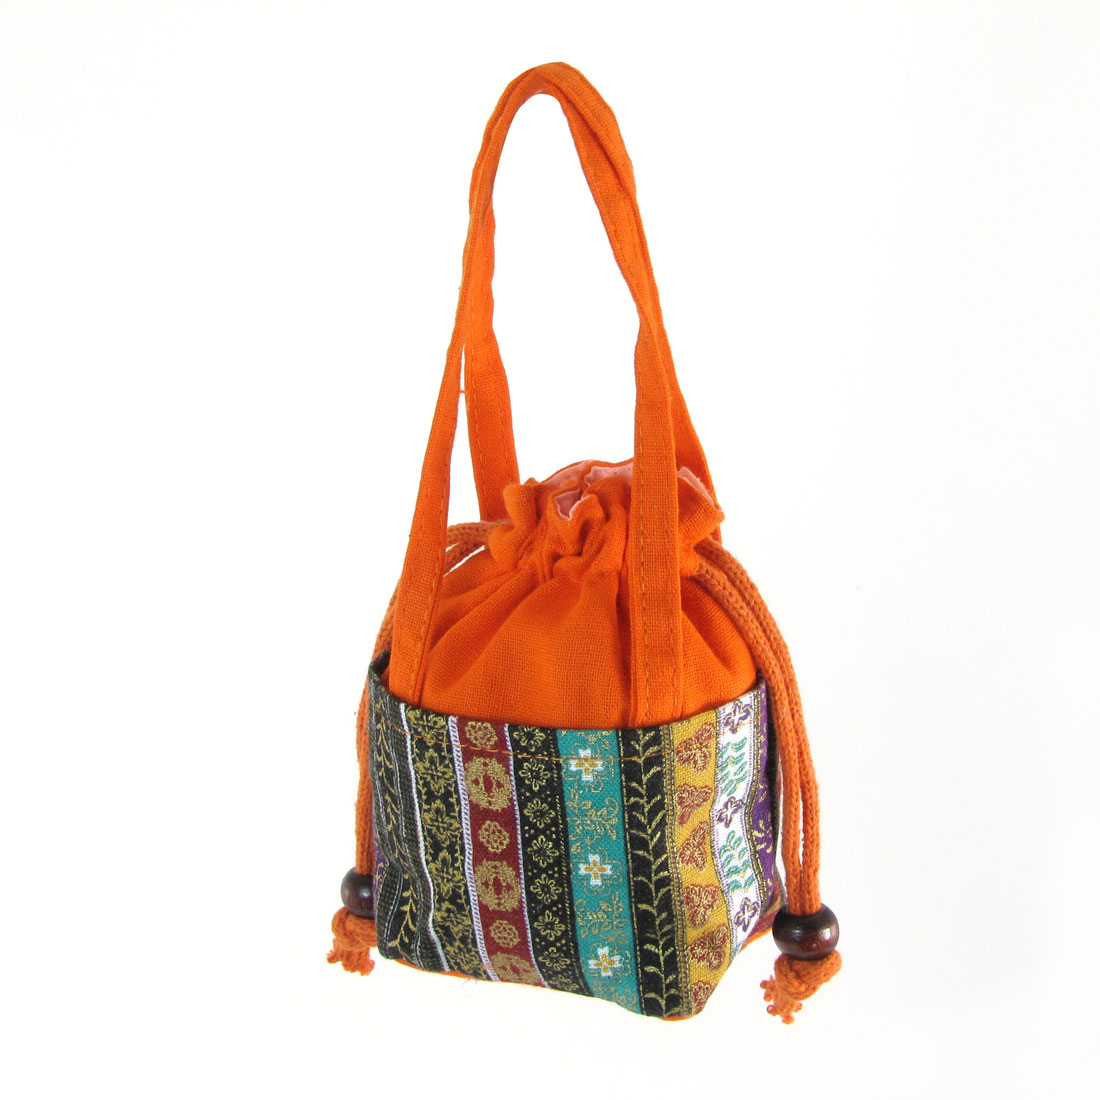 Woman Flower Print Drawstring Closure Orange Nylon Coin Tote Bag Purse